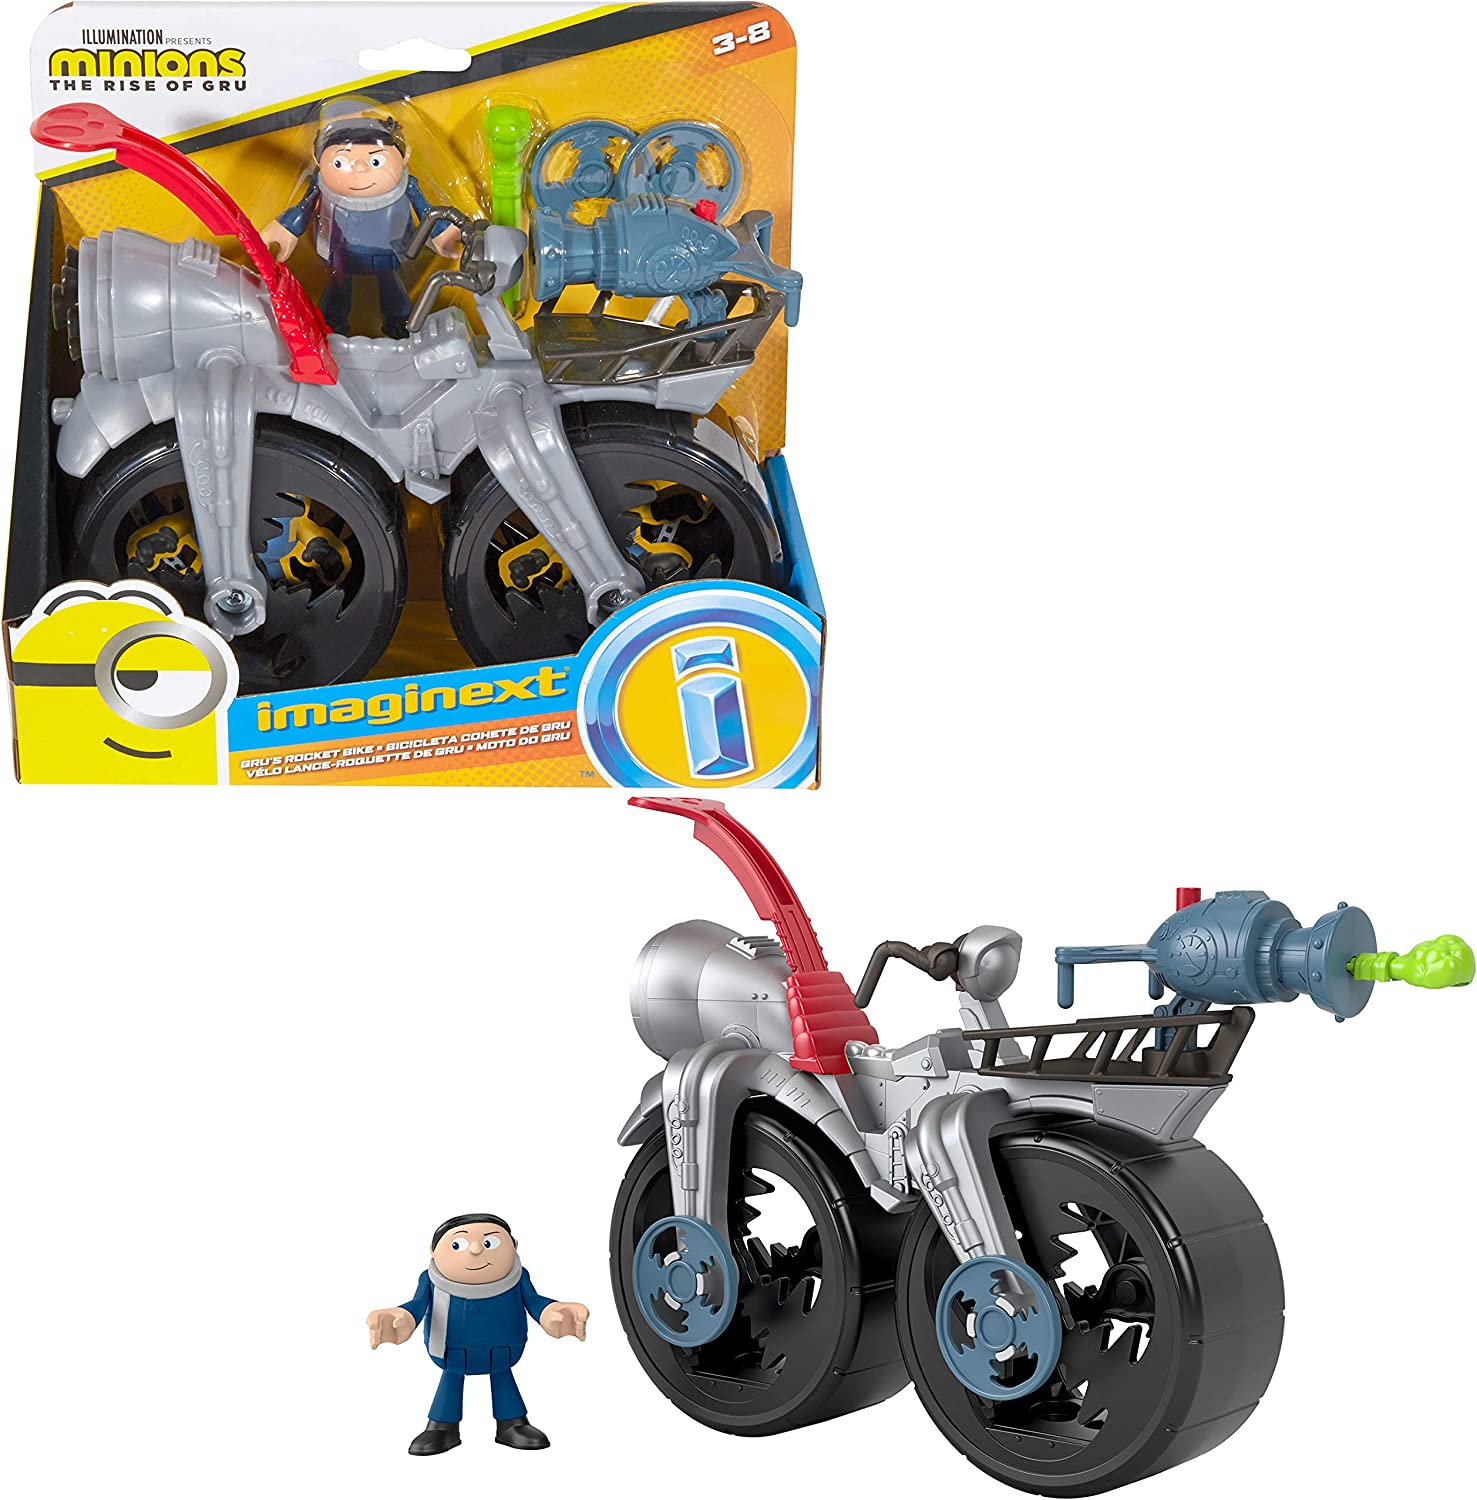 Fisher-Price Imaginext Minions Gru's Rocket Bike, character figure and push-along toy bicycle set